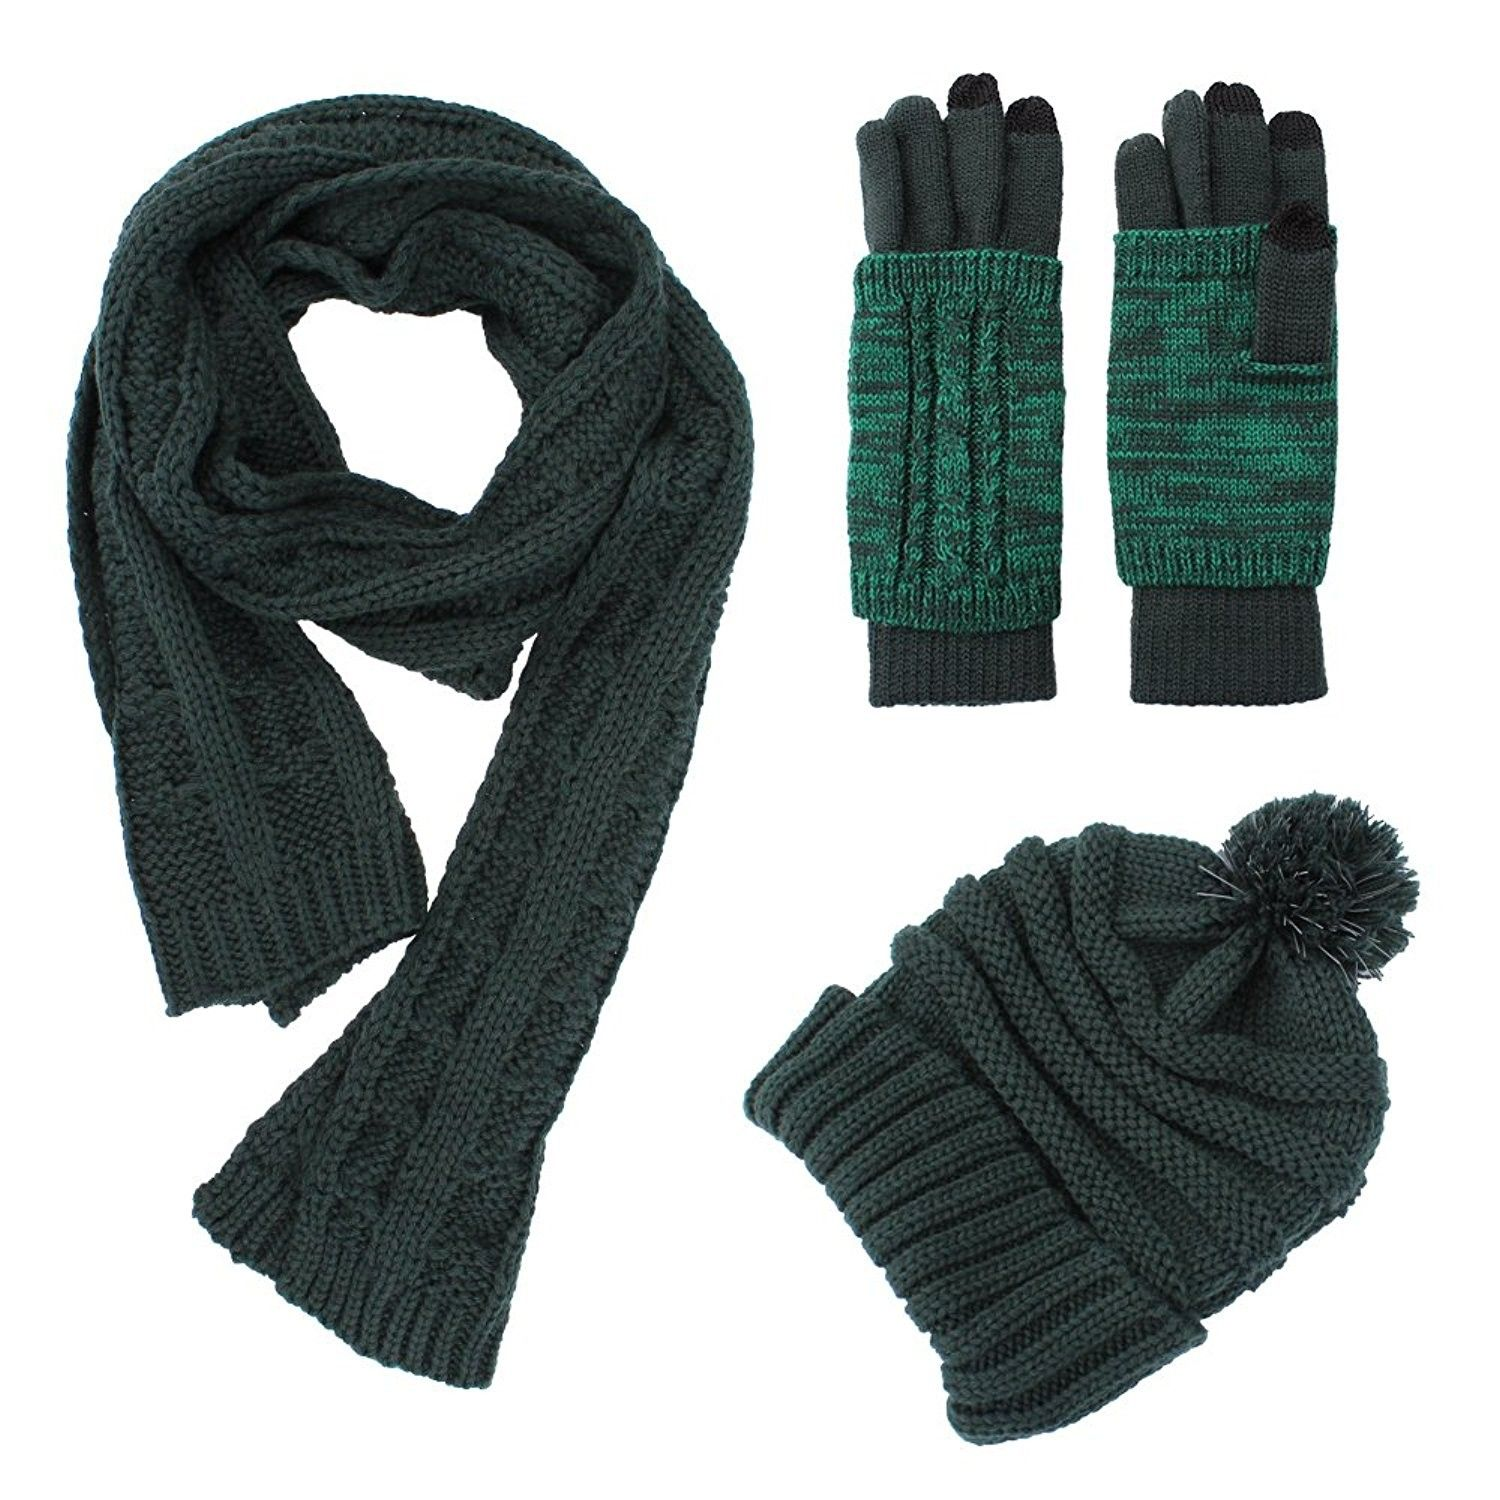 New Men Women/'s Winter Unisex Fashion Warm Knitted Lover Casual Long Wrap Scarf